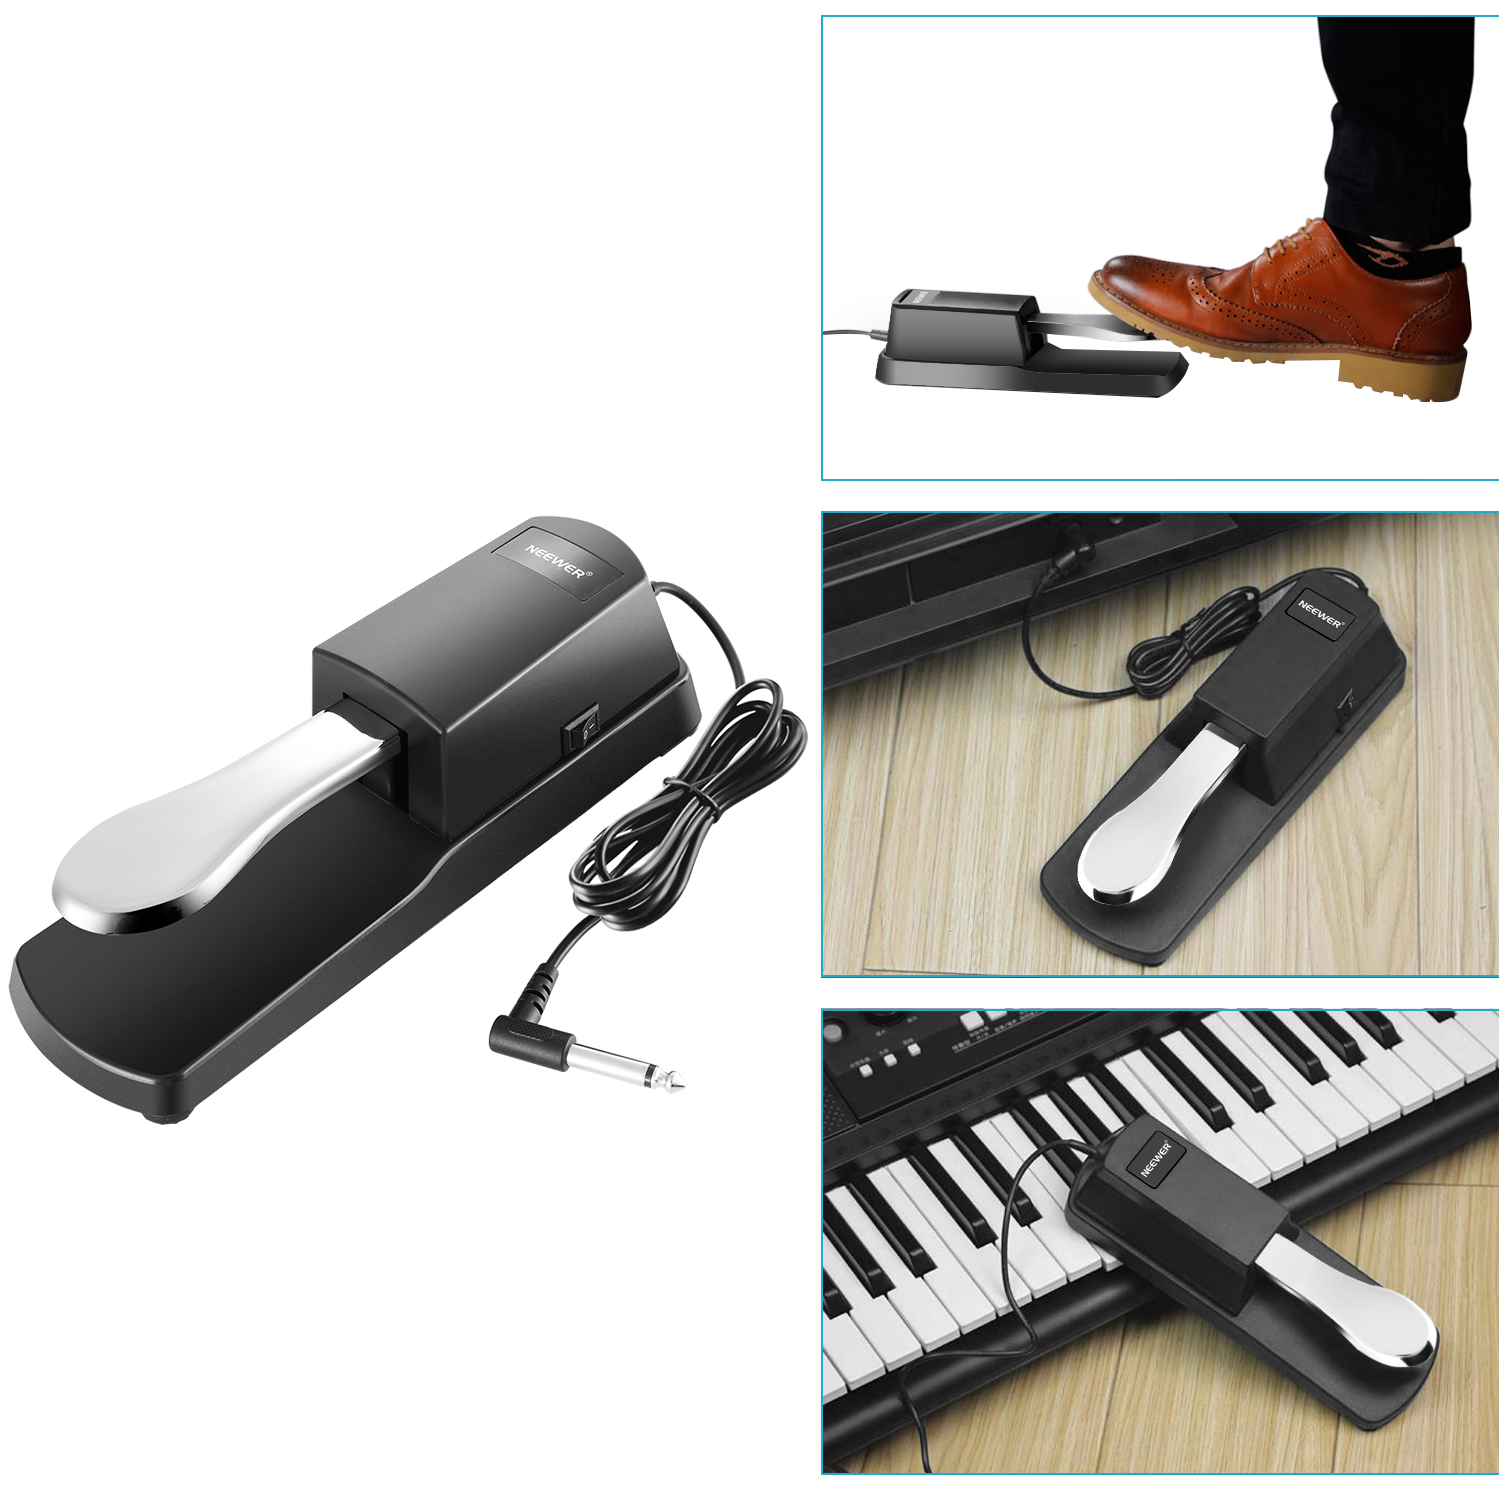 how to change sustain pedal polarity